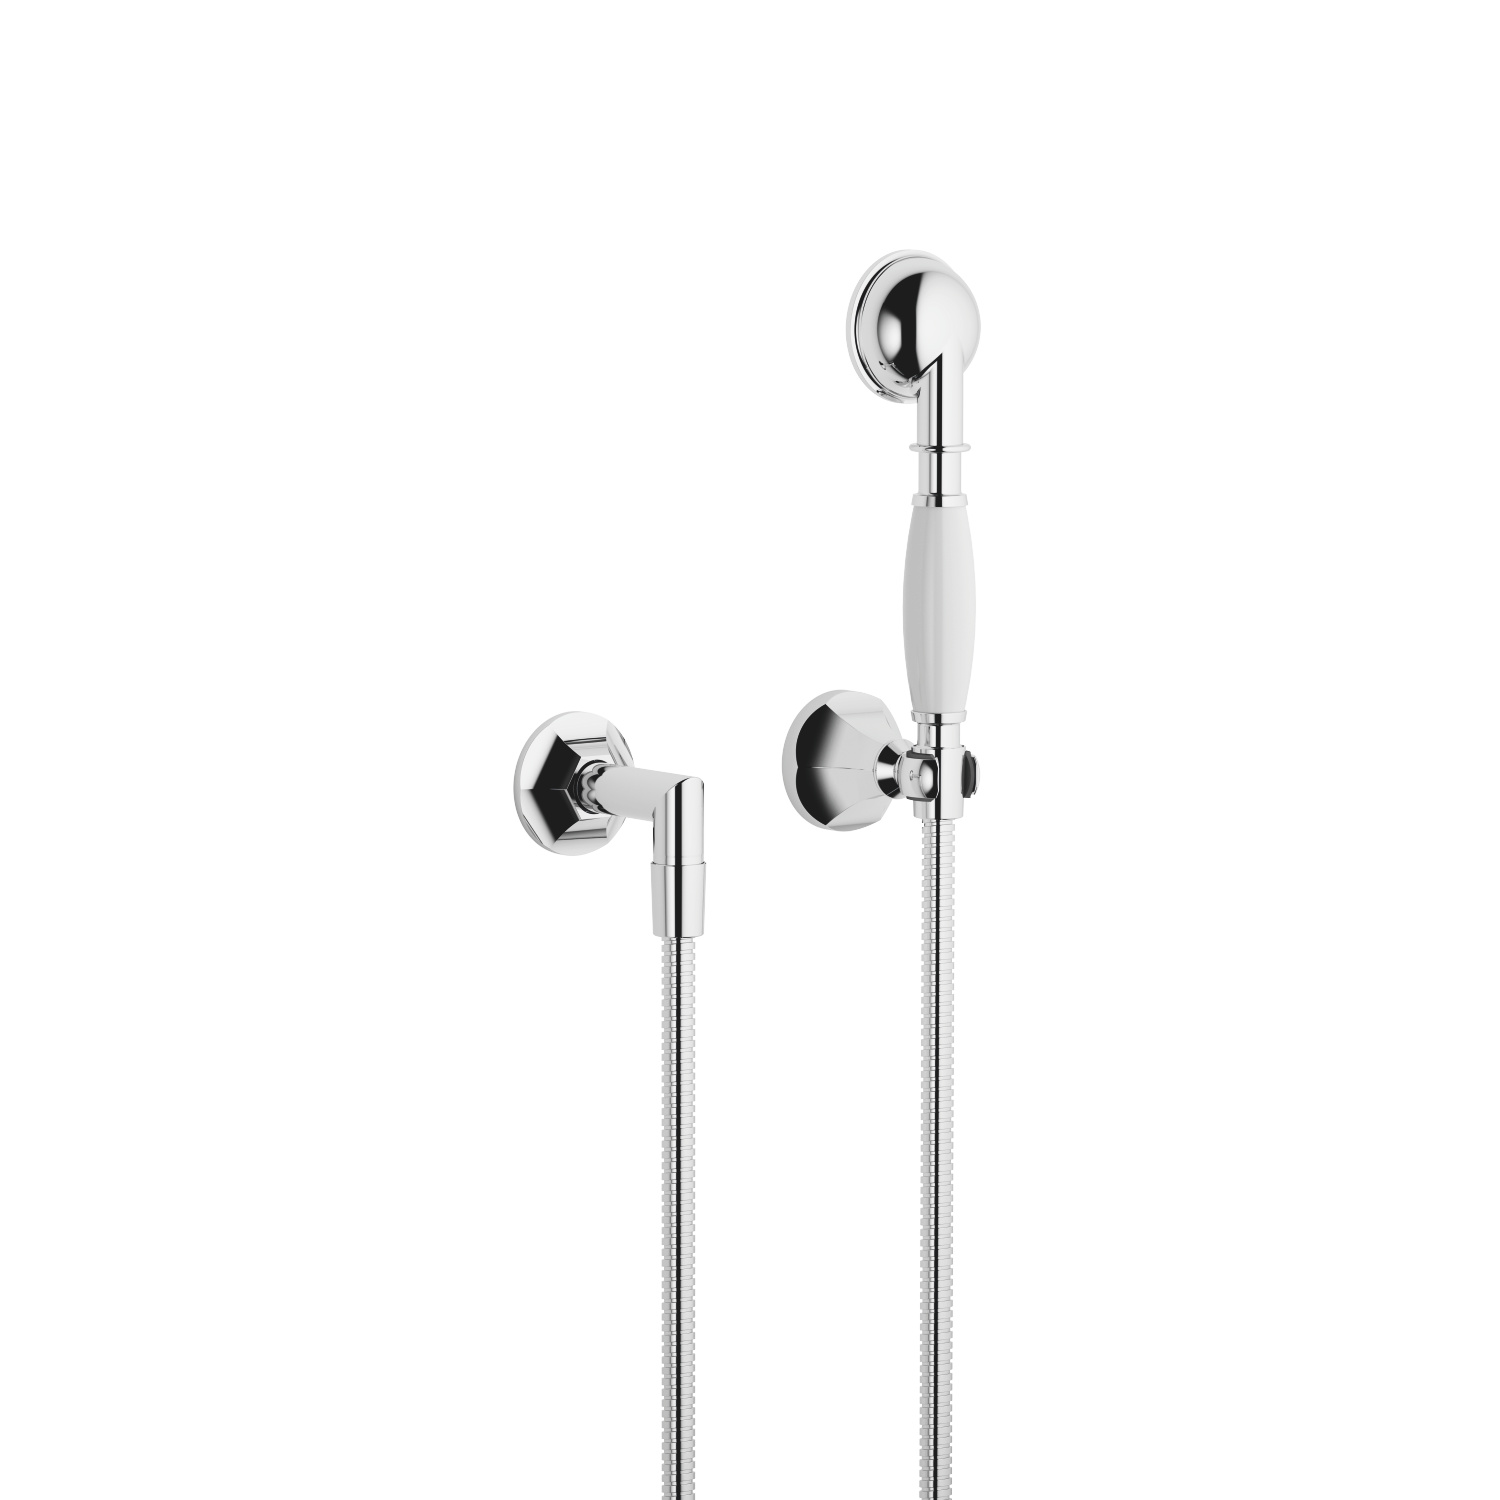 Hand shower set with individual rosettes - polished chrome - 27 803 371-00